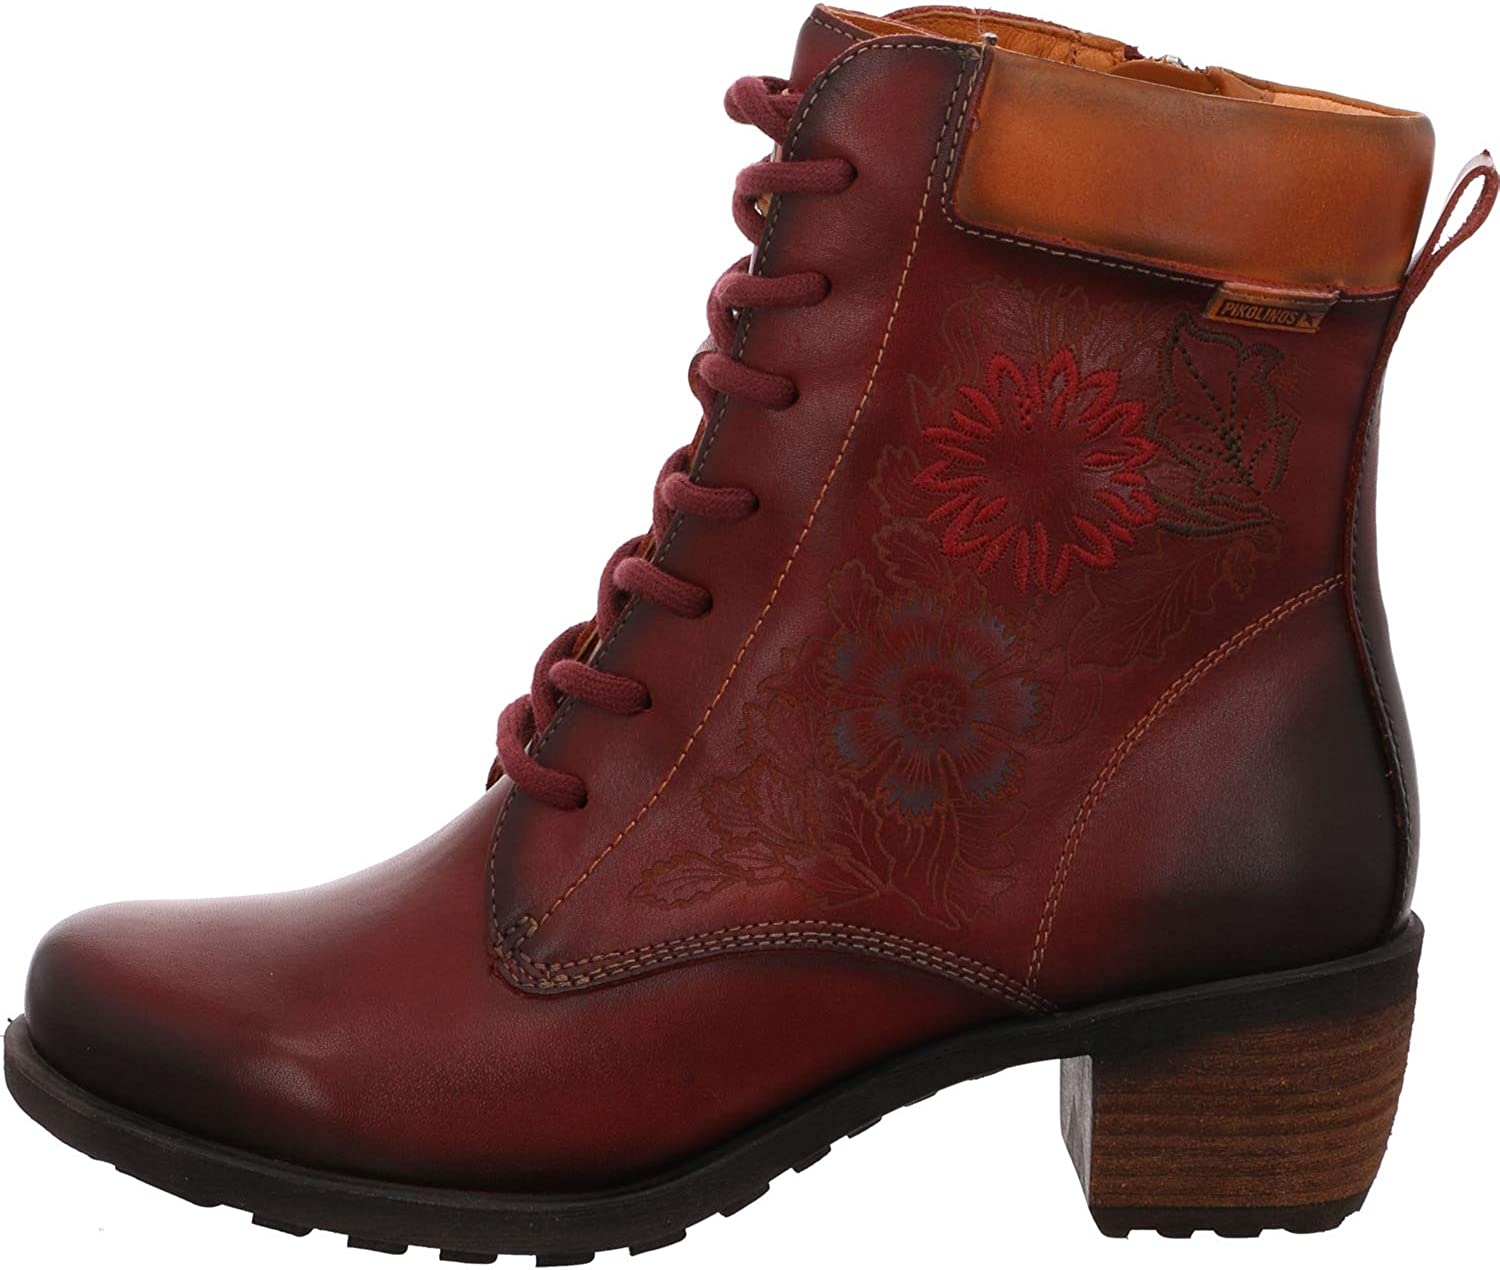 Pikolinos Womens Le Mans Leather Boots